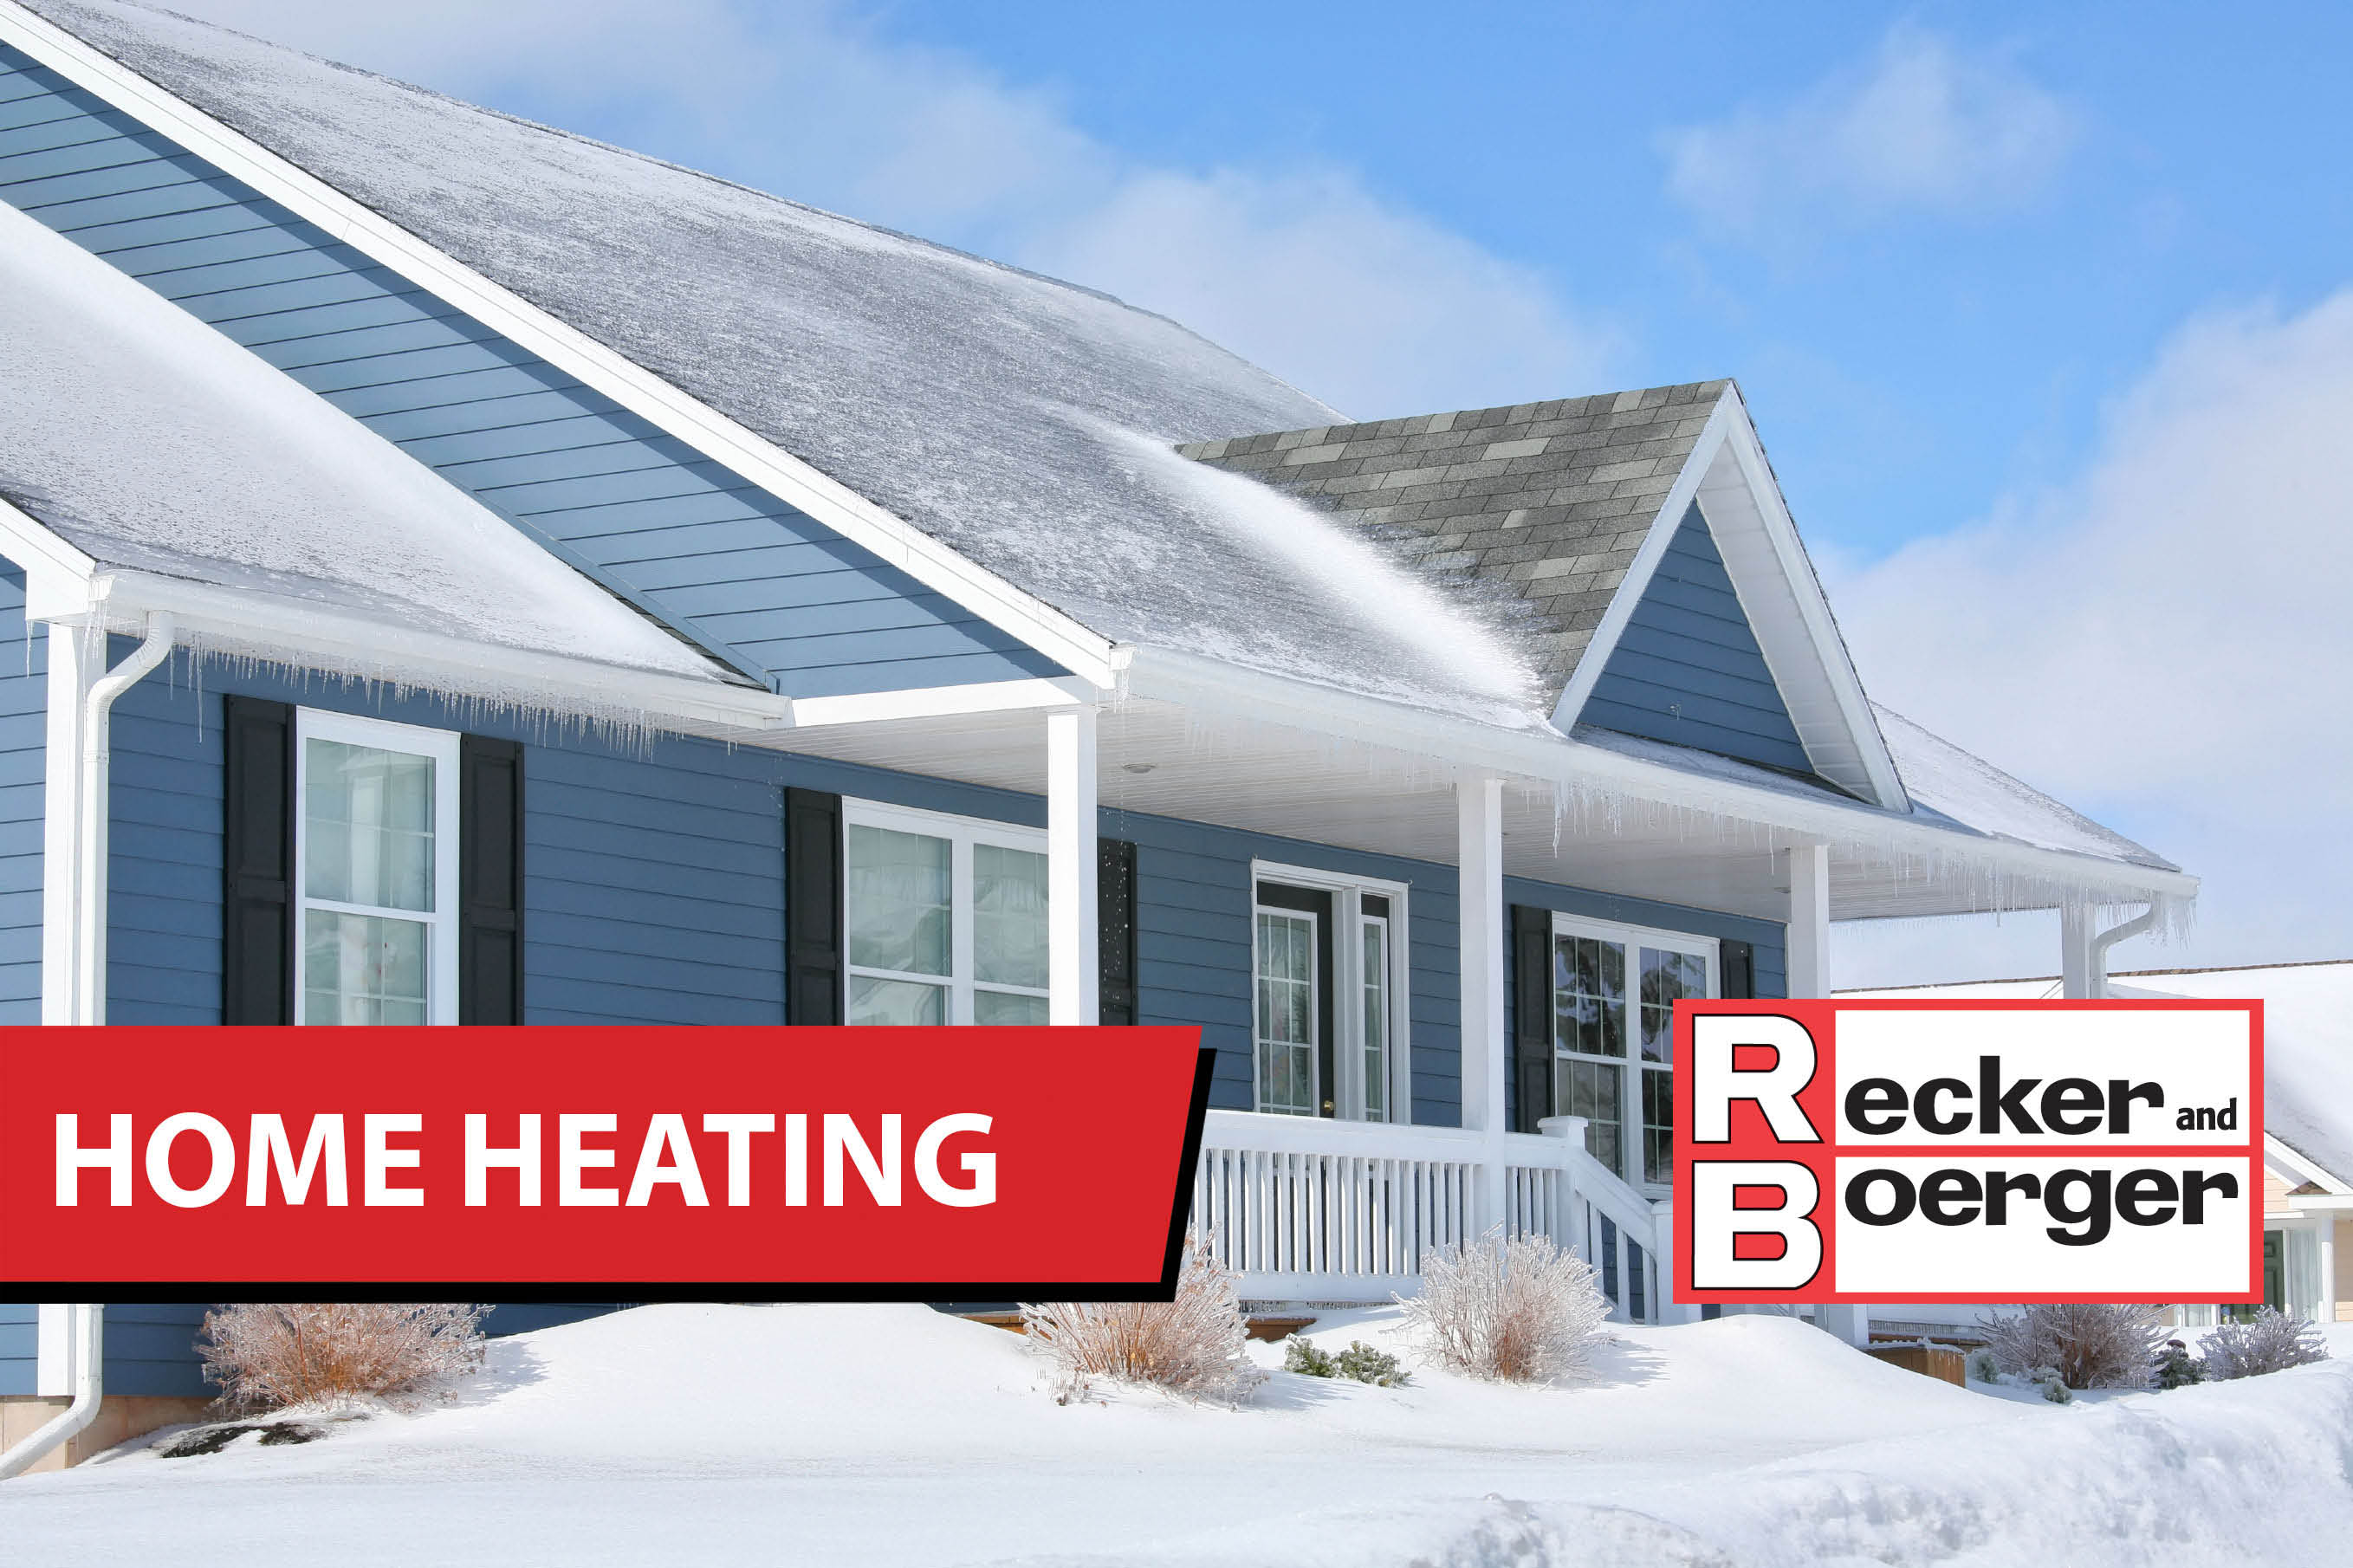 heating your home with recker and boerger heaters